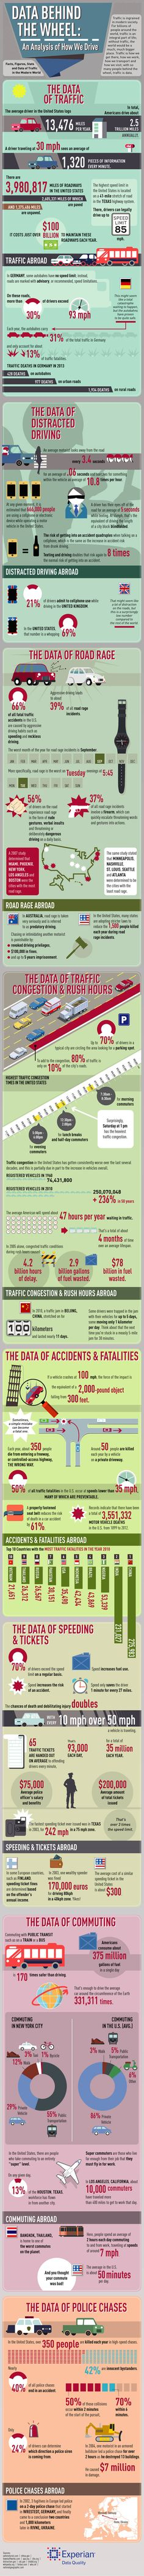 This infographic delves into the data of the billions of people who get behind the wheel every day in the United States and around the world.